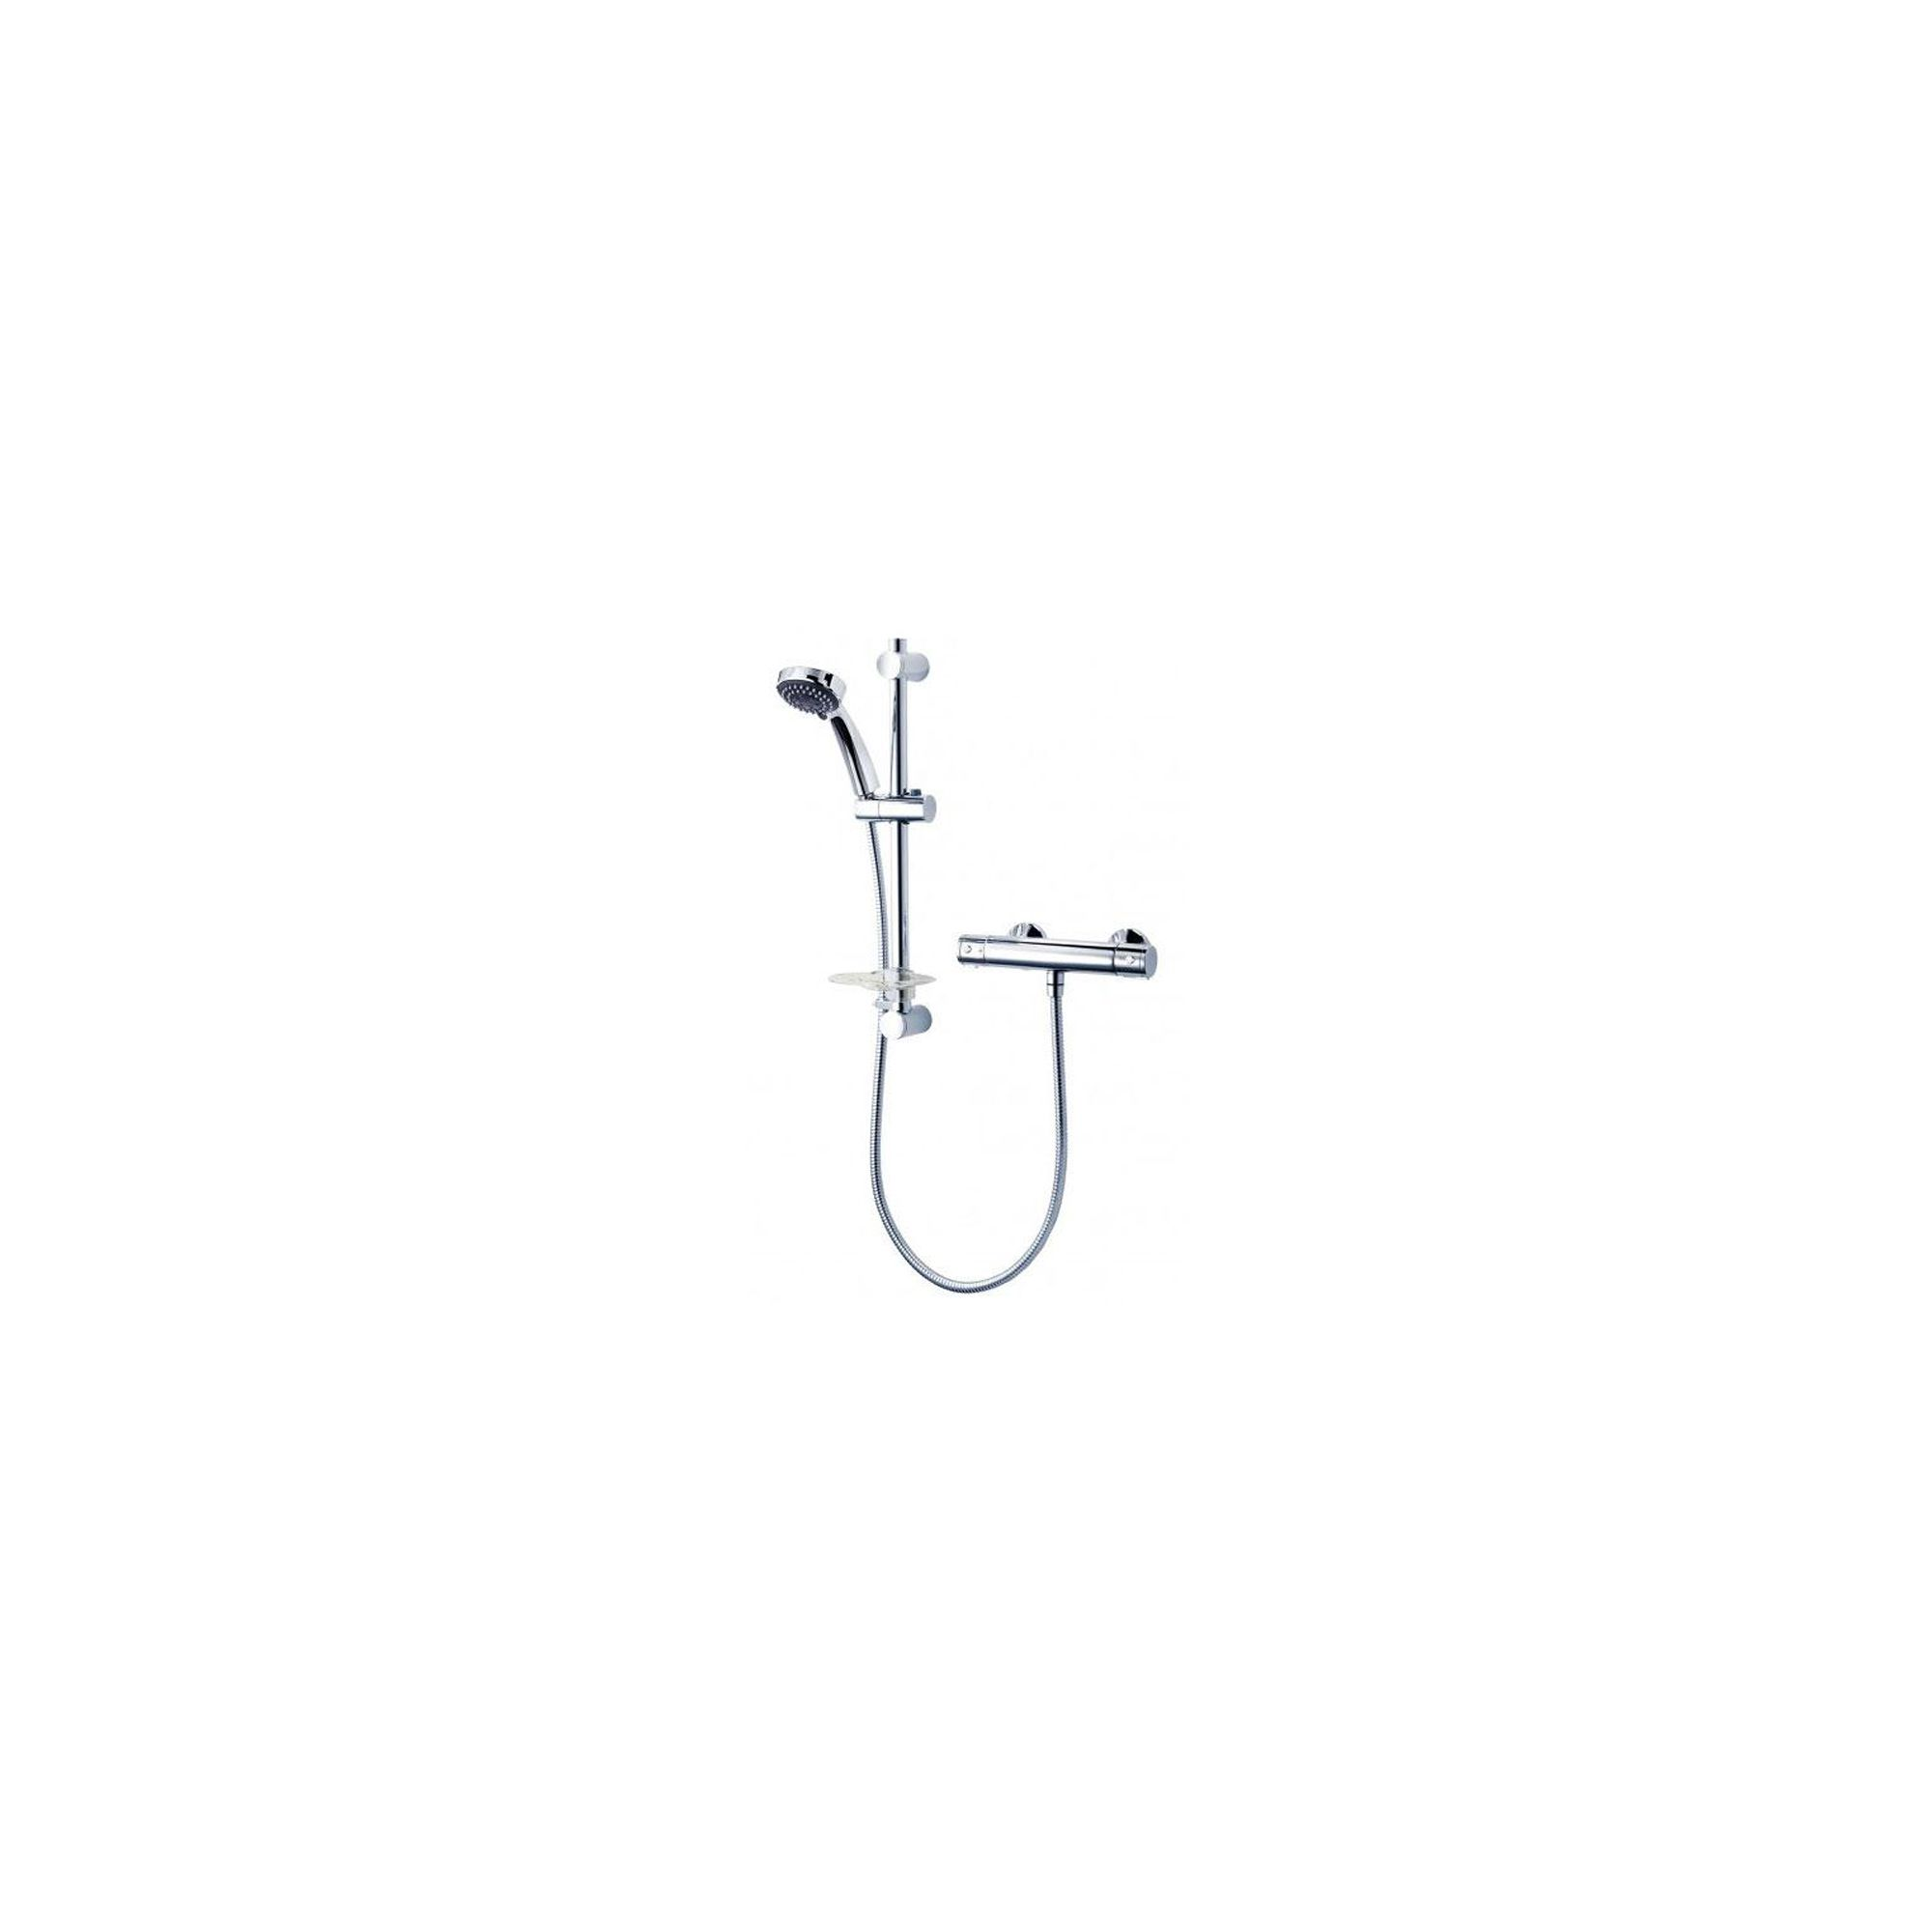 Triton Nene Cool Touch Thermostatic Bar Mixer Chrome at Tesco Direct